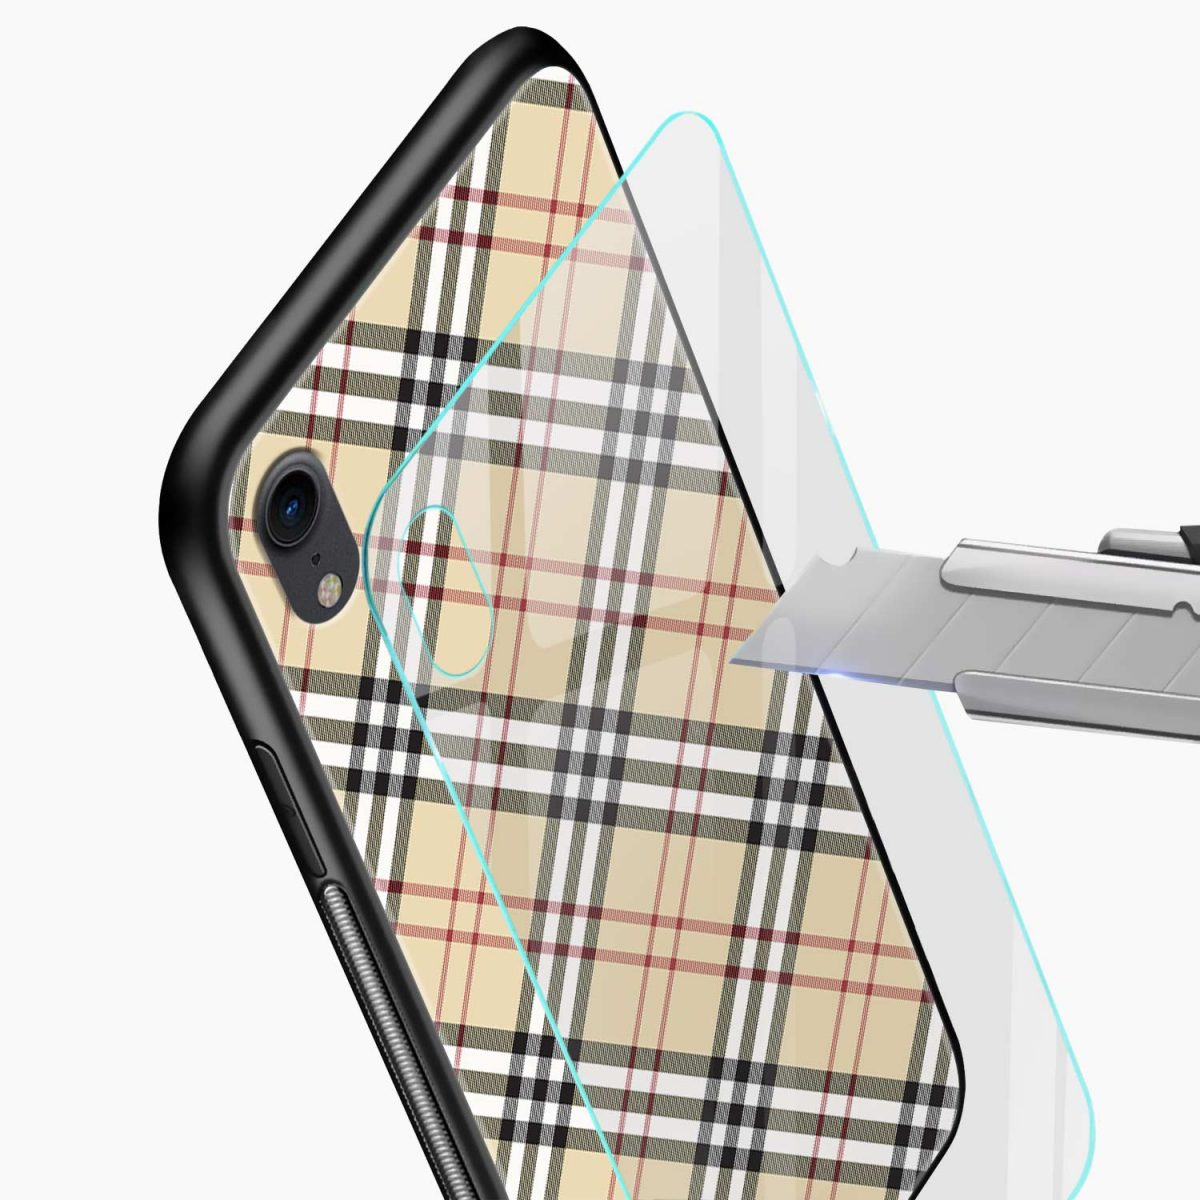 cross line pattern apple iphone xr back cover glass view